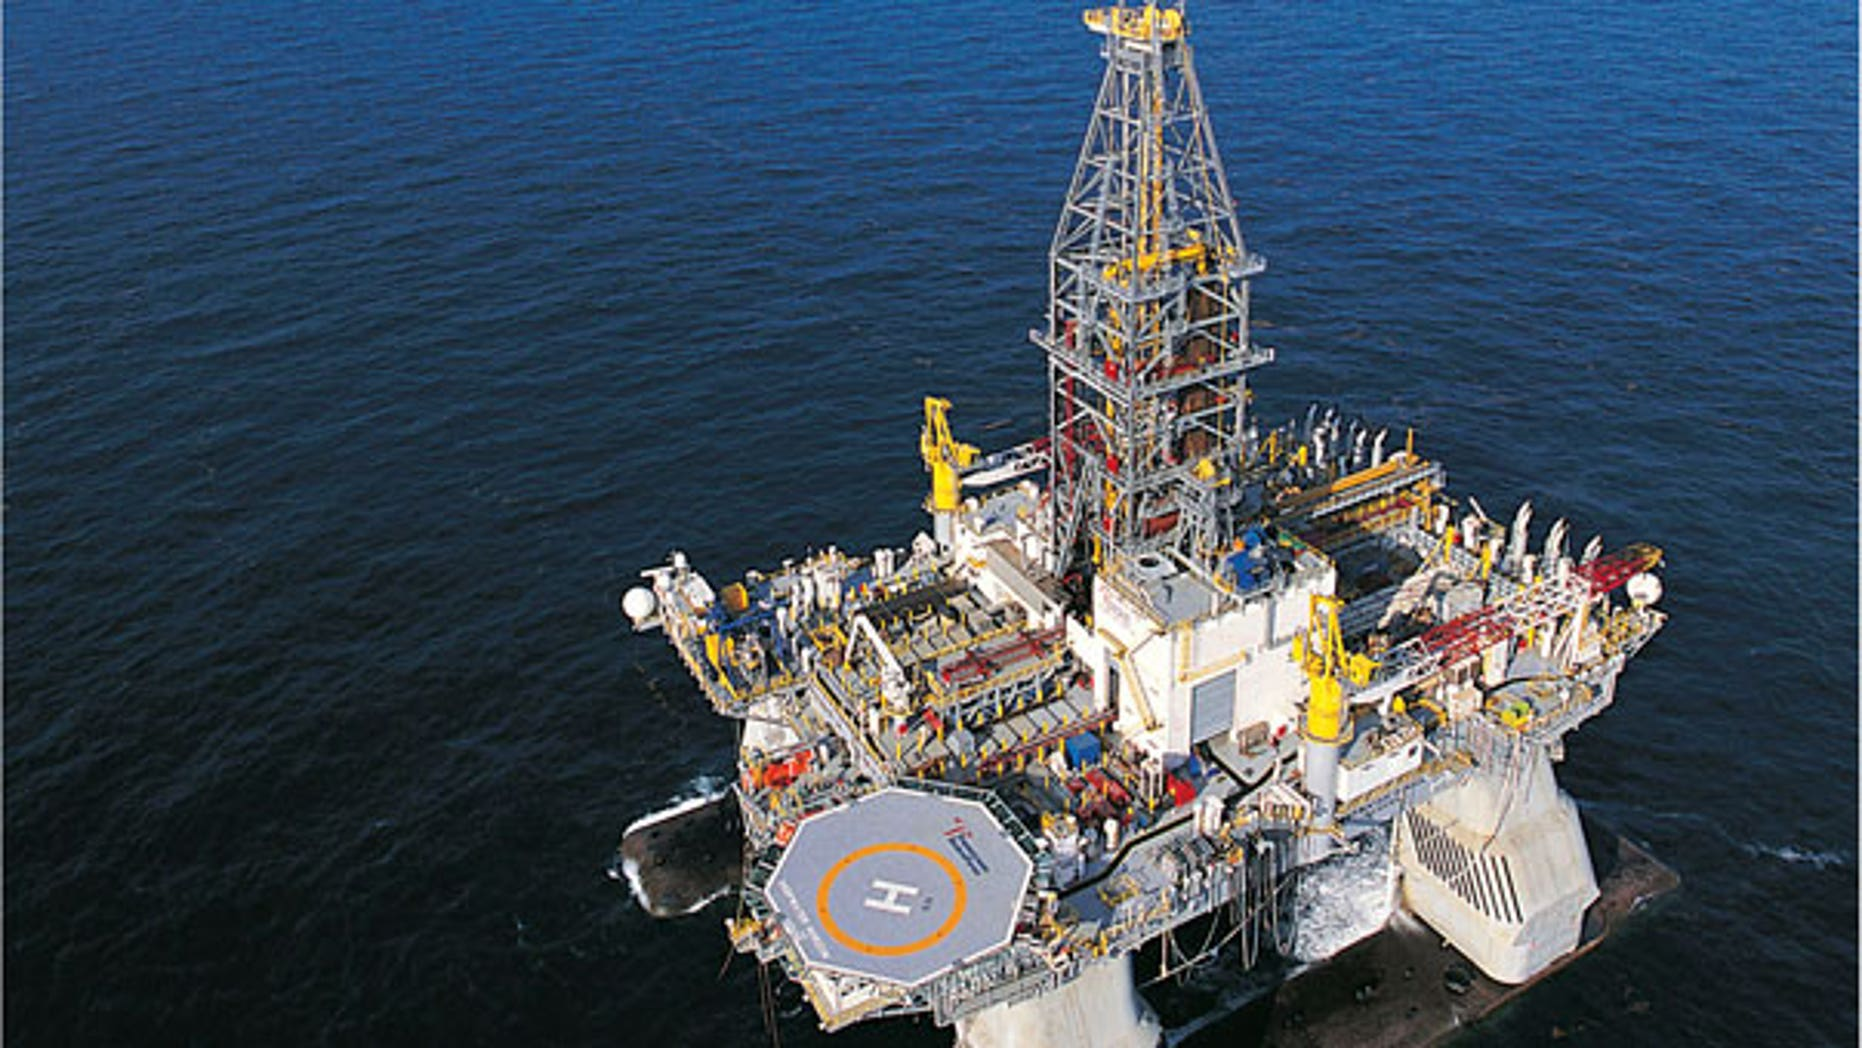 FILE: The Deepwater Horizon rig is shown operating in the U.S. Gulf of Mexico. Authorities were searching for missing workers after an explosion at the oil drilling platform off the coast of Louisiana.